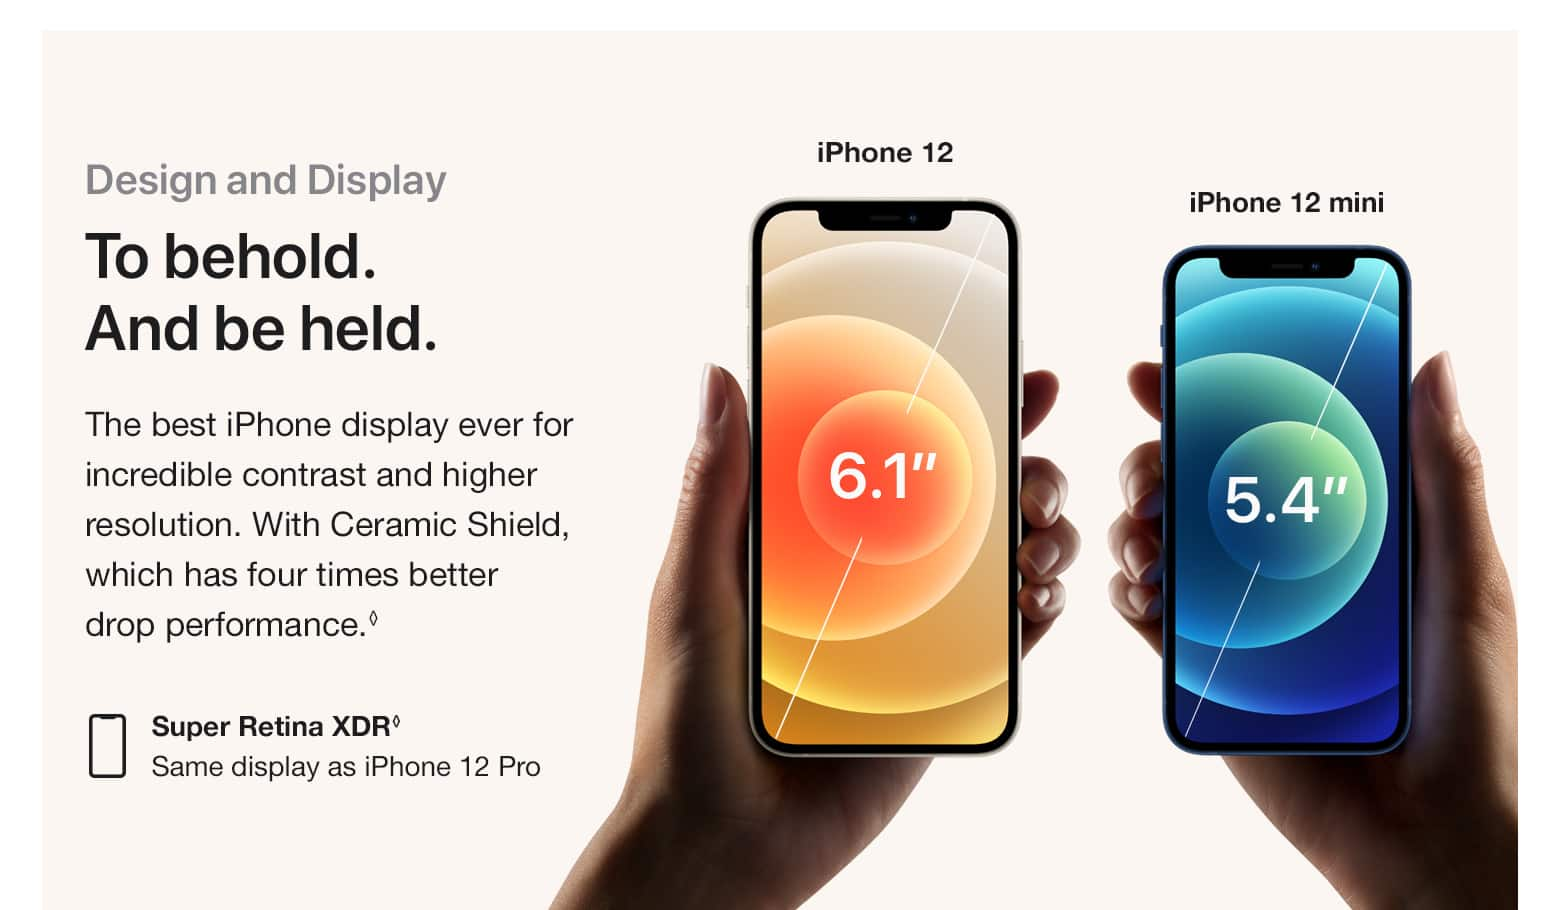 Design and Display. To behold. And be held. The best iPhone display ever for incredible contrast and higher resolution. With Ceramic Shield, which has four times better drop performance.(♢) Super Retina XDR(♢) - Same display as iPhone 12 Pro